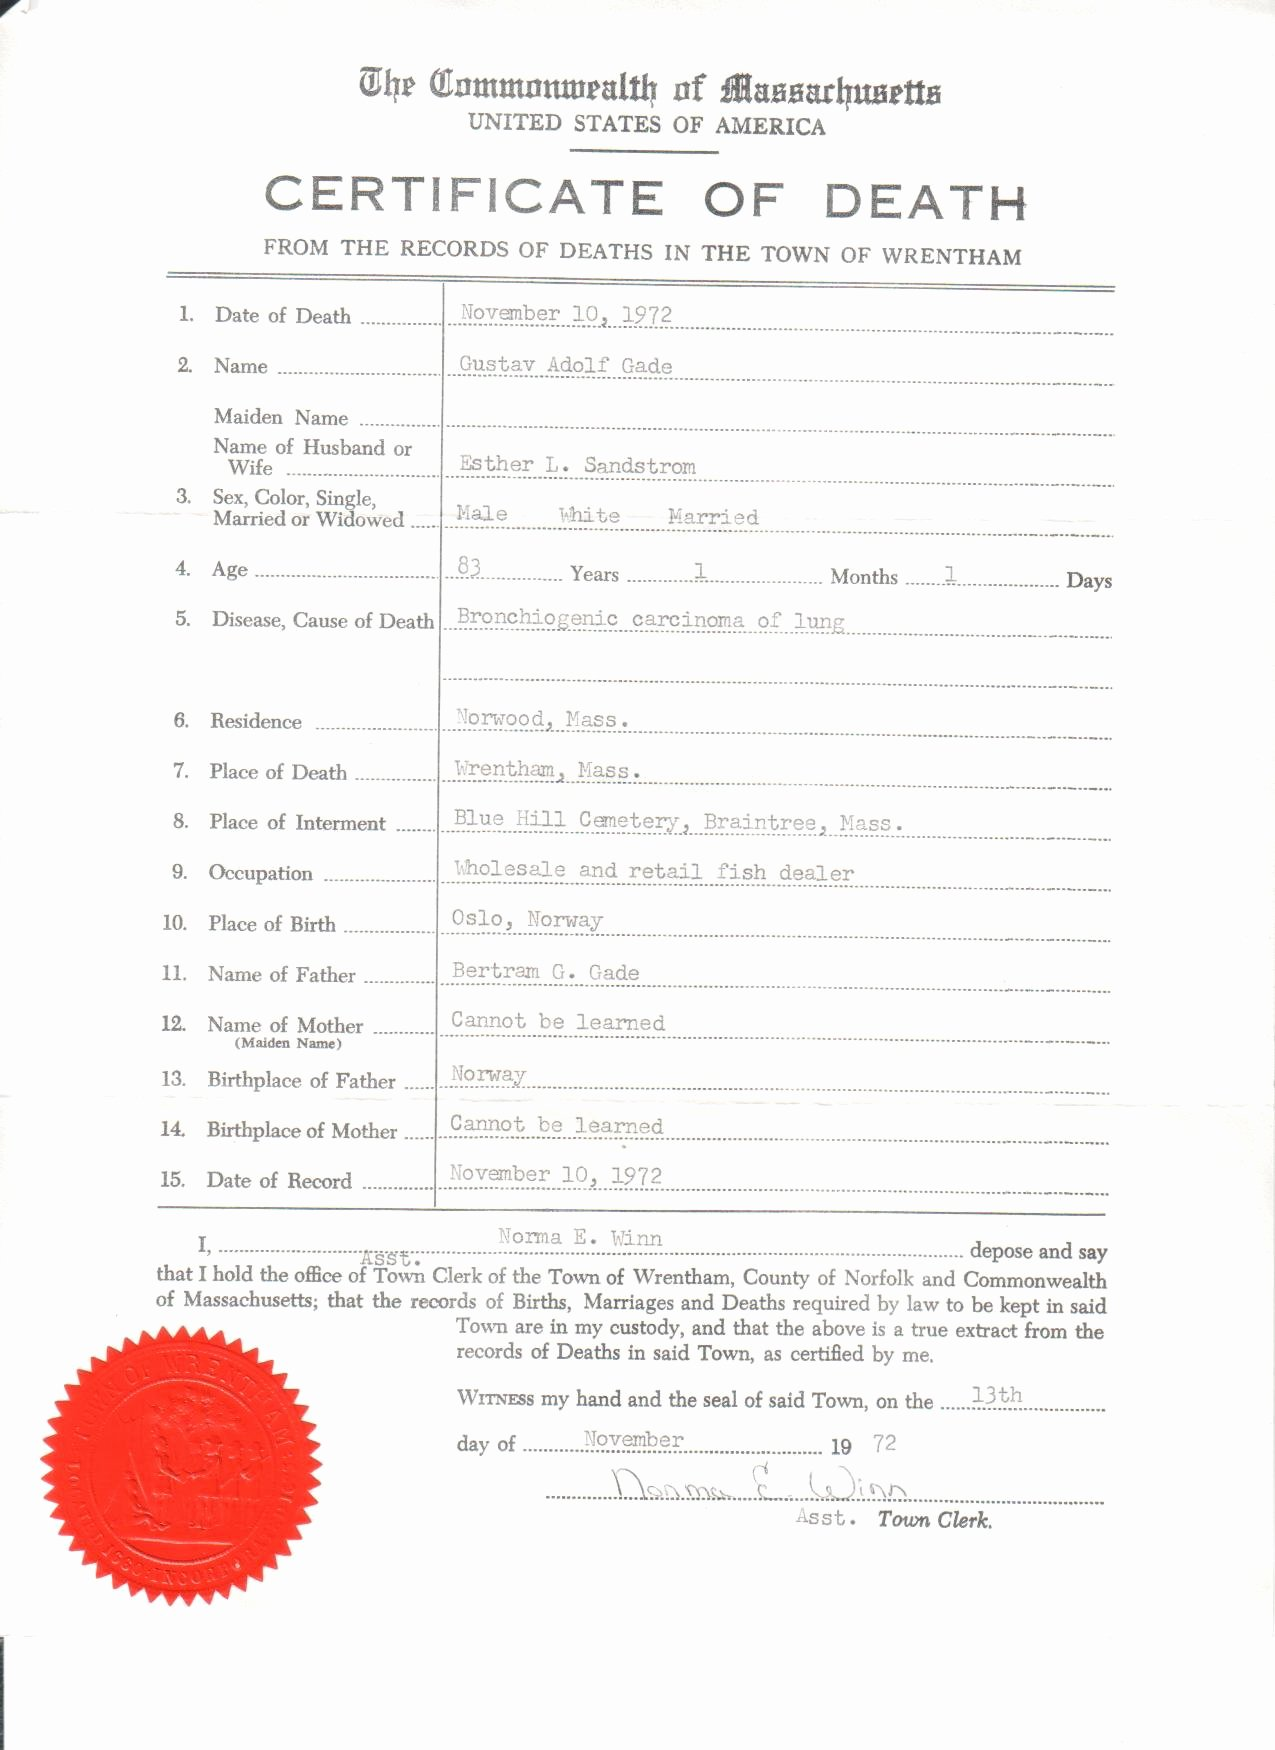 Florida Death Certificate Sample Best Of Blank Certificates Online Empty Certificates